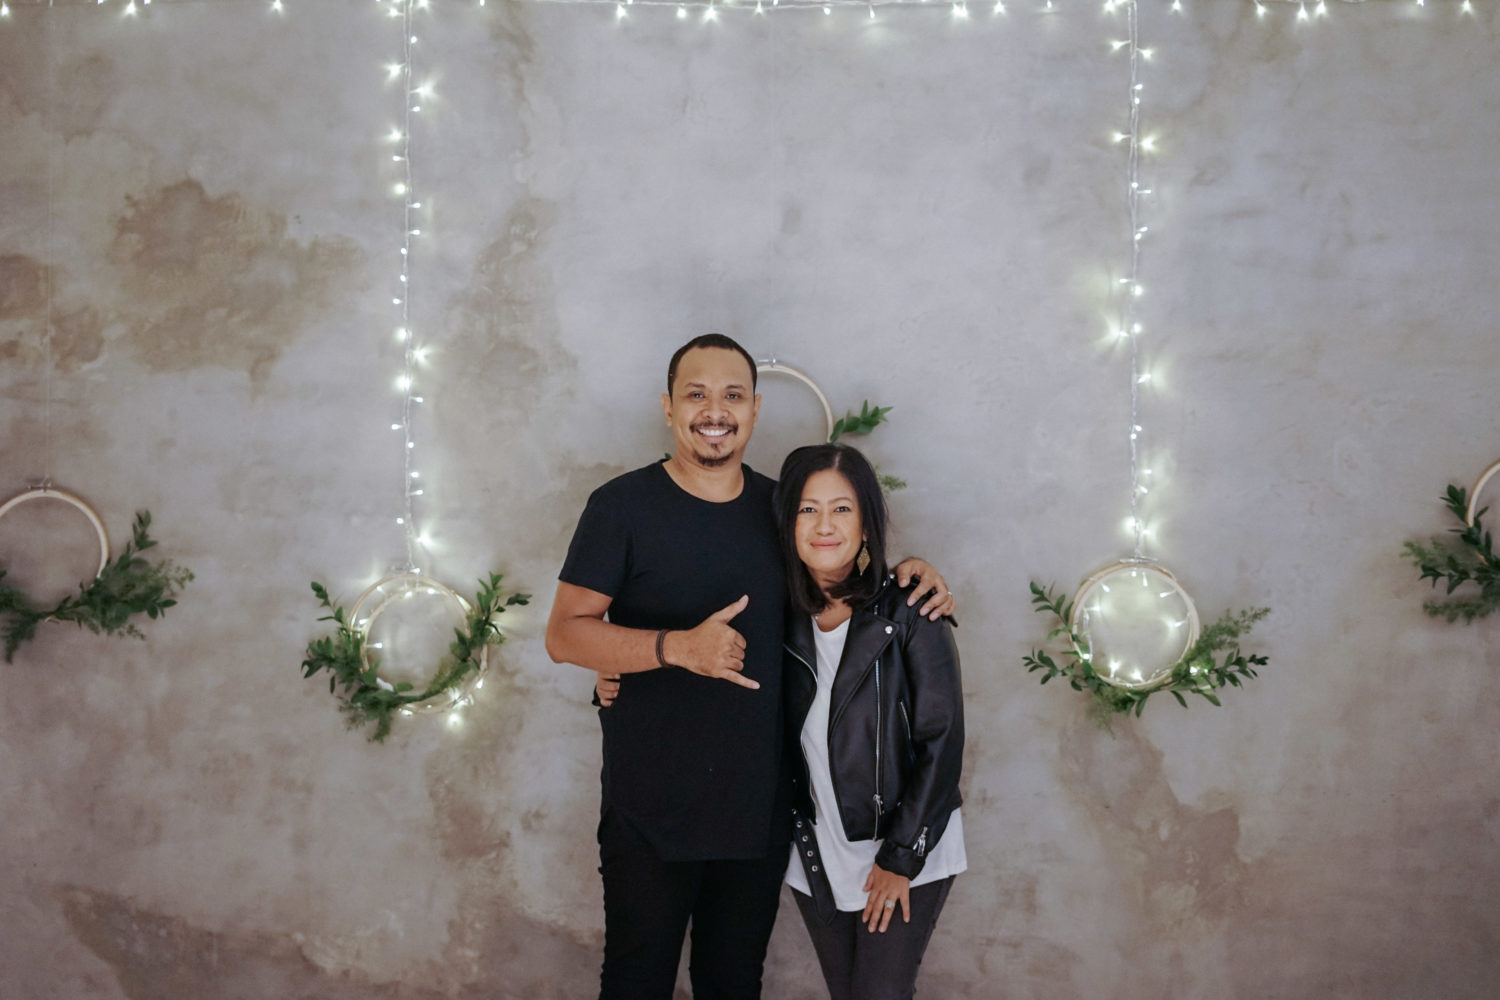 Eka and Englyn Mutty, Indonesia Campus Pastors